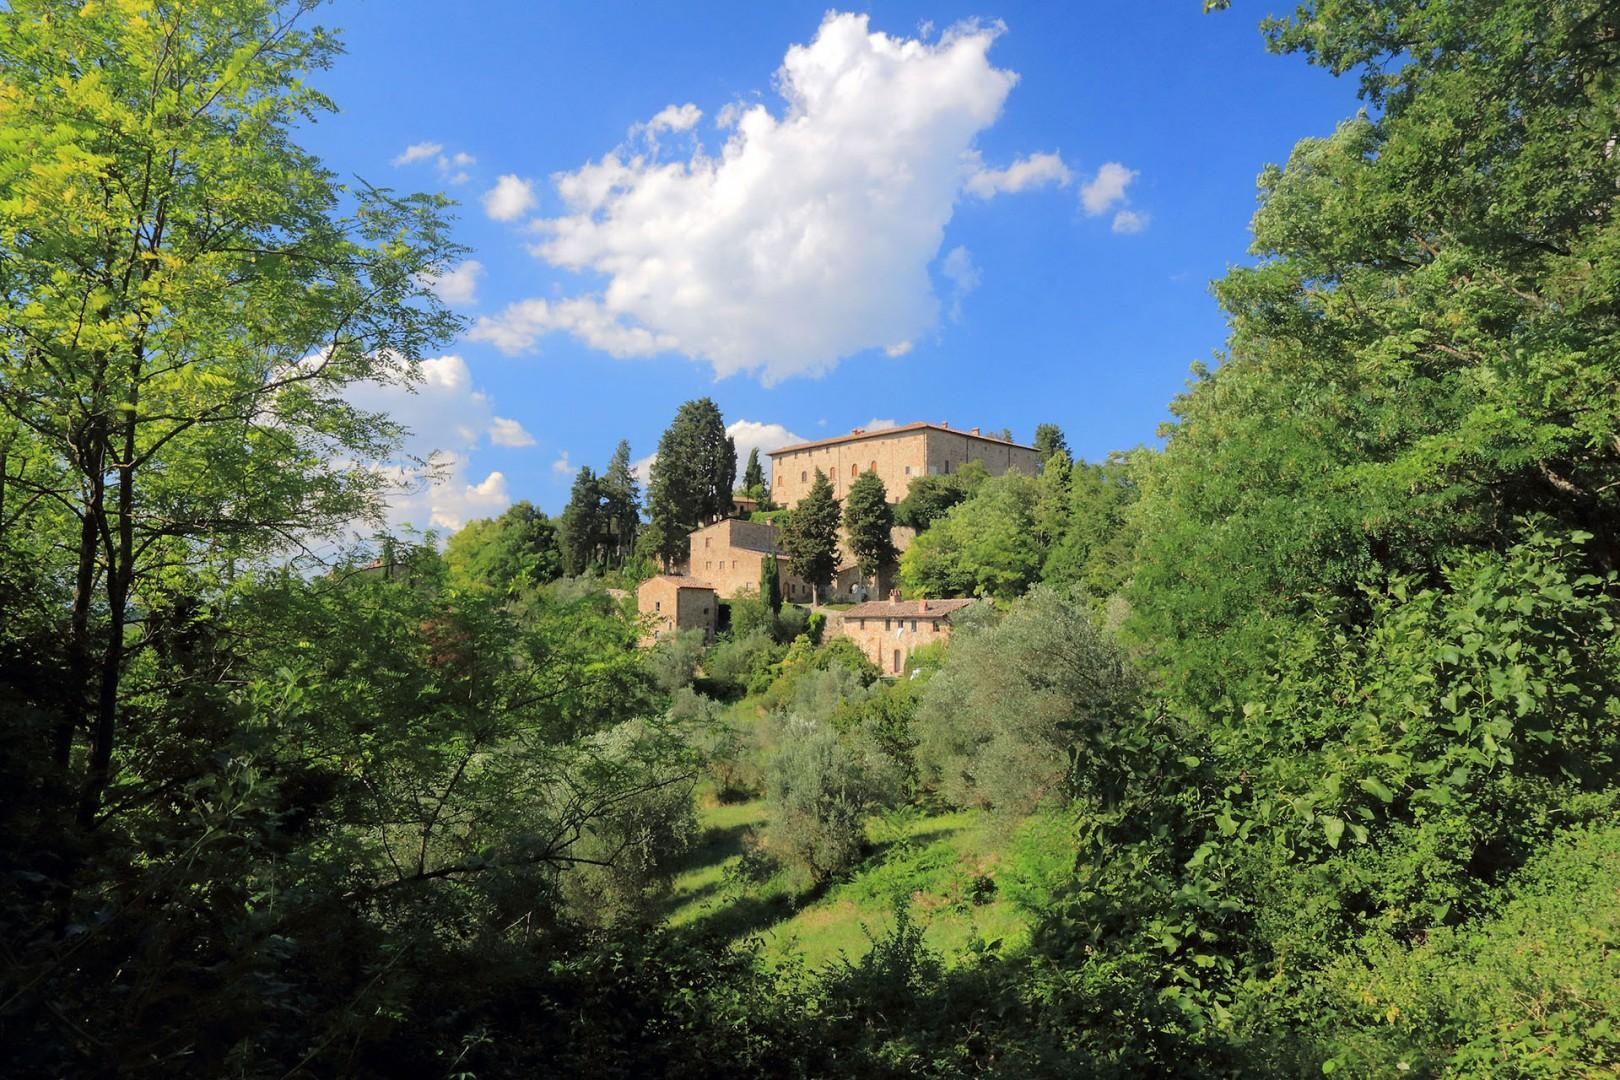 Just up the road is Castello Niccolo. It is about 100 yards distant.